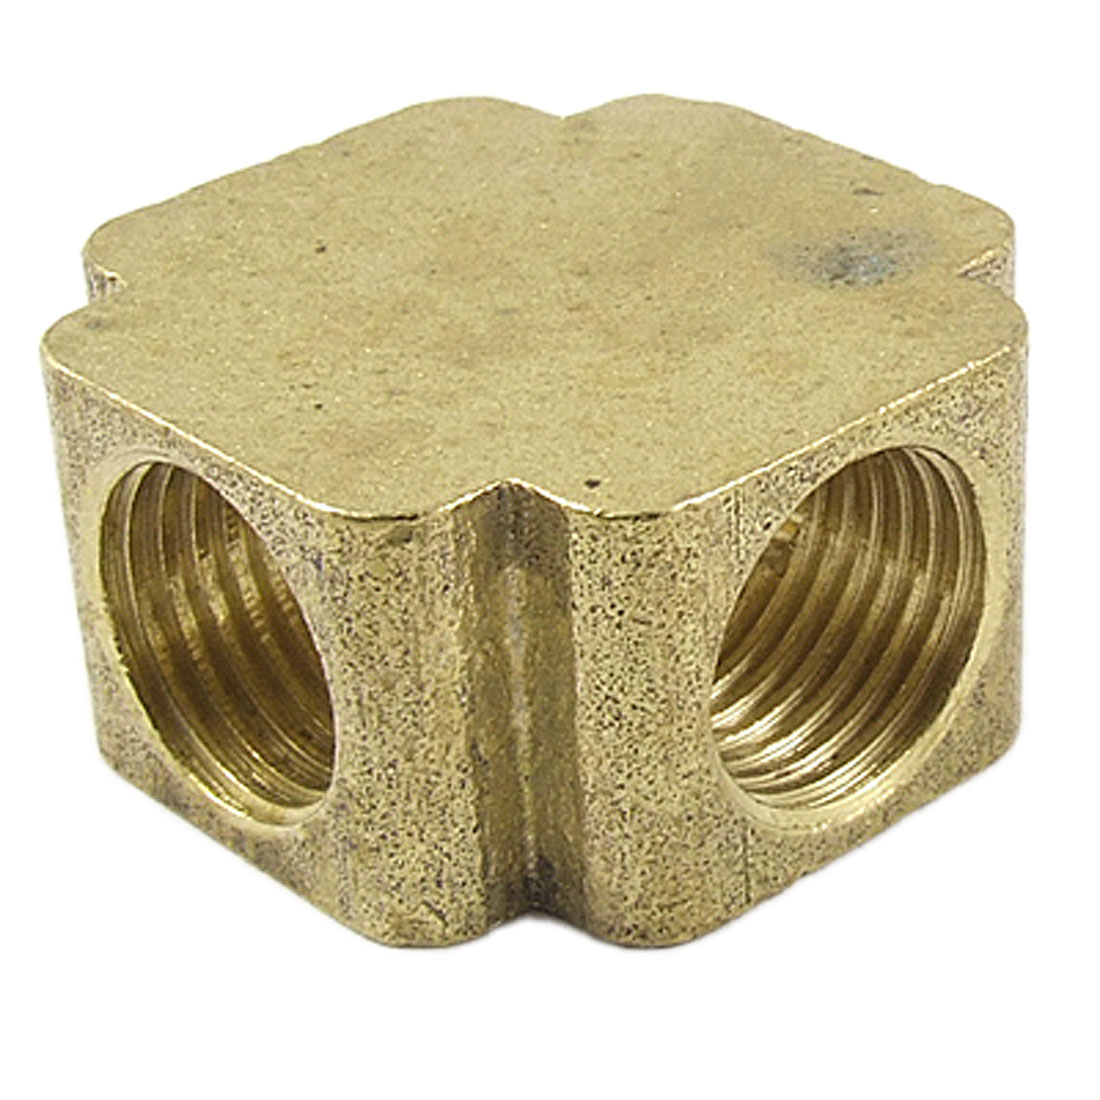 "Brass 1/4"" NPT Female Thread 4 Ways Cross Connector Pipe Adapter Coupler Gold Tone"